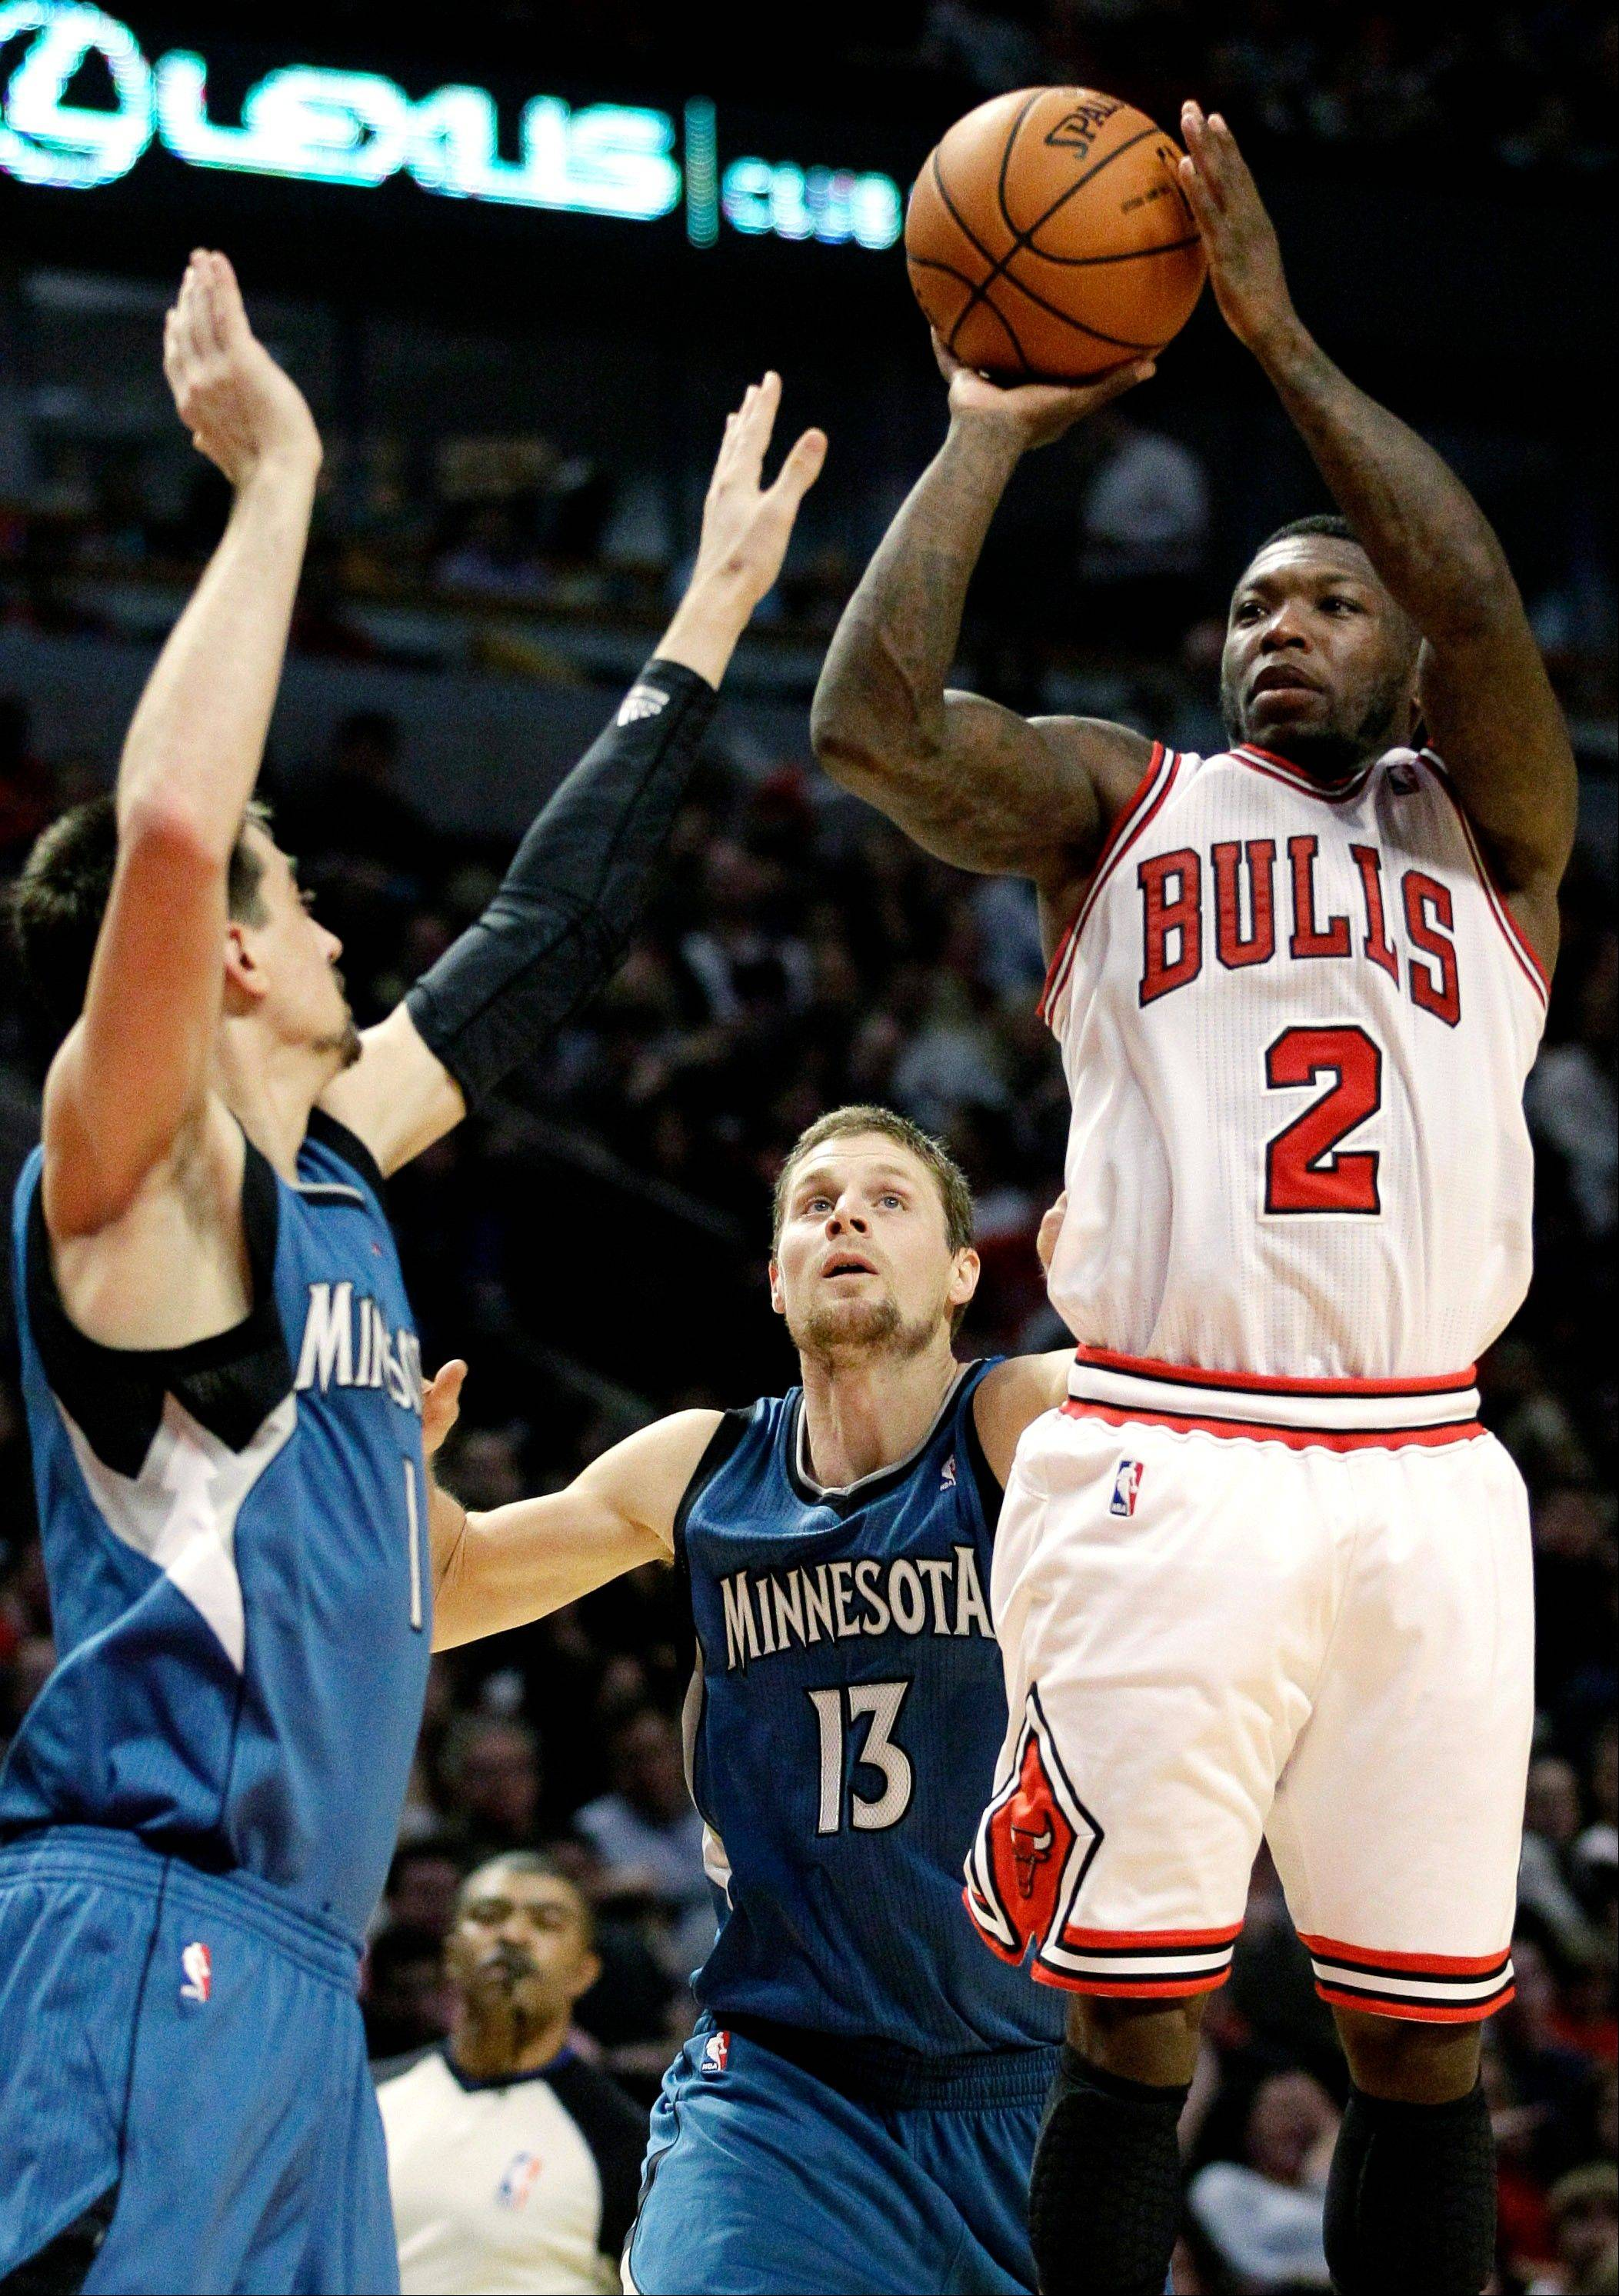 Bulls' reserve guards could get on floor